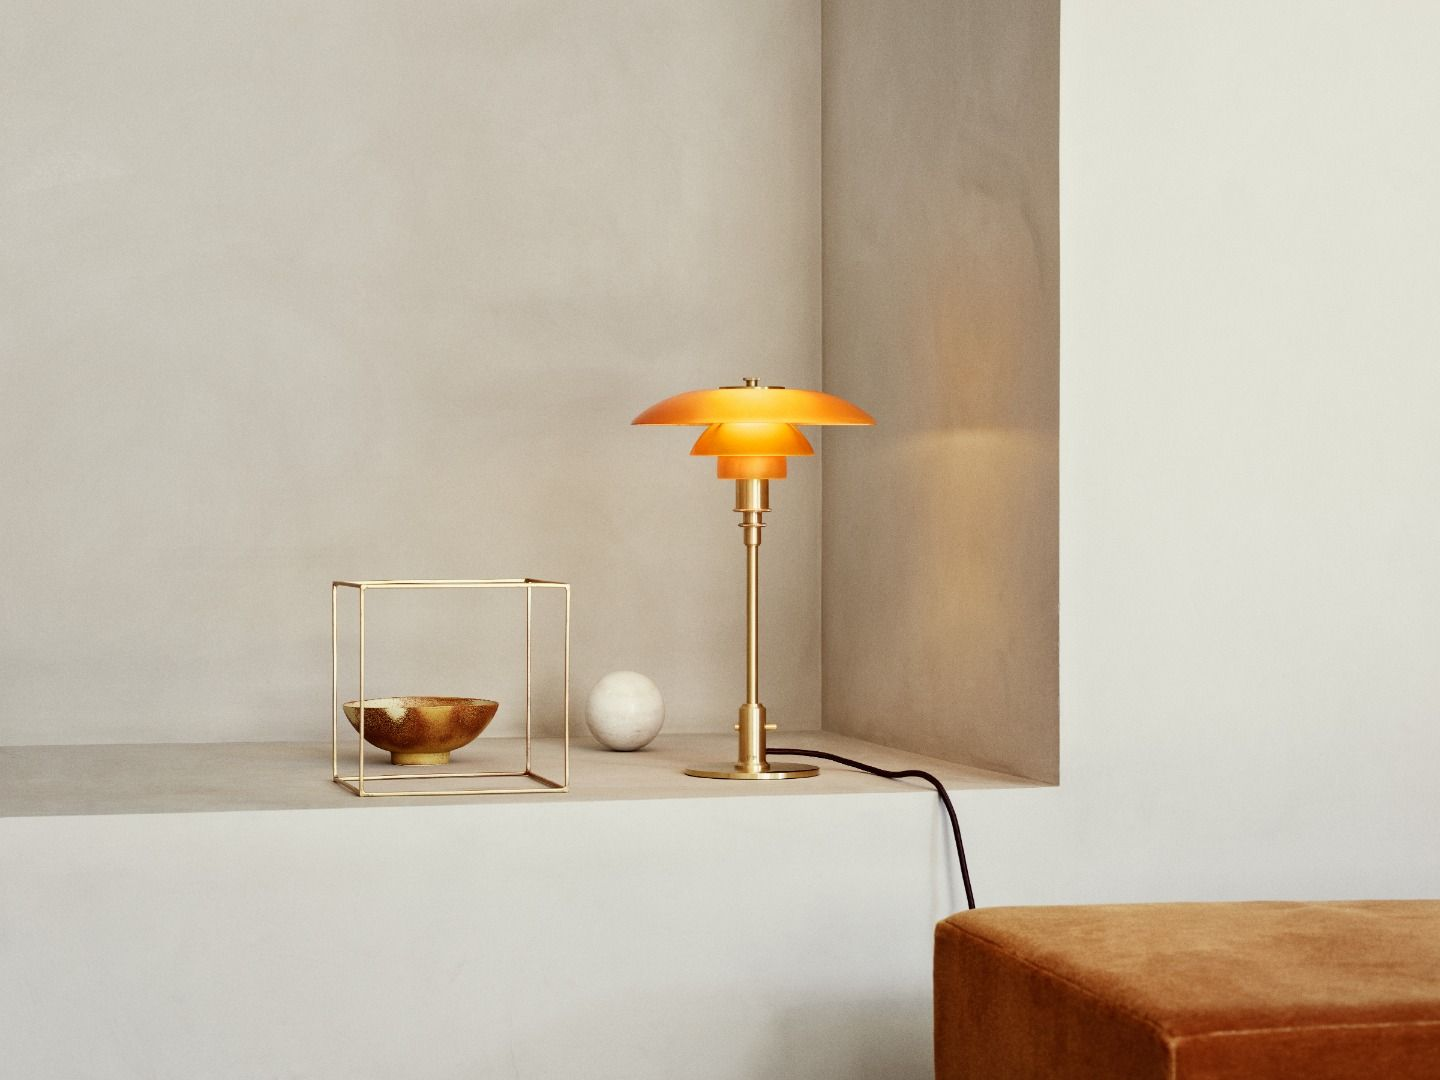 Louis Poulsen Ph 3 2 Limited Edition Ph 3 2 Amber Colored Glass Table Lamp By Poul Henningsen For Louis Poulsen